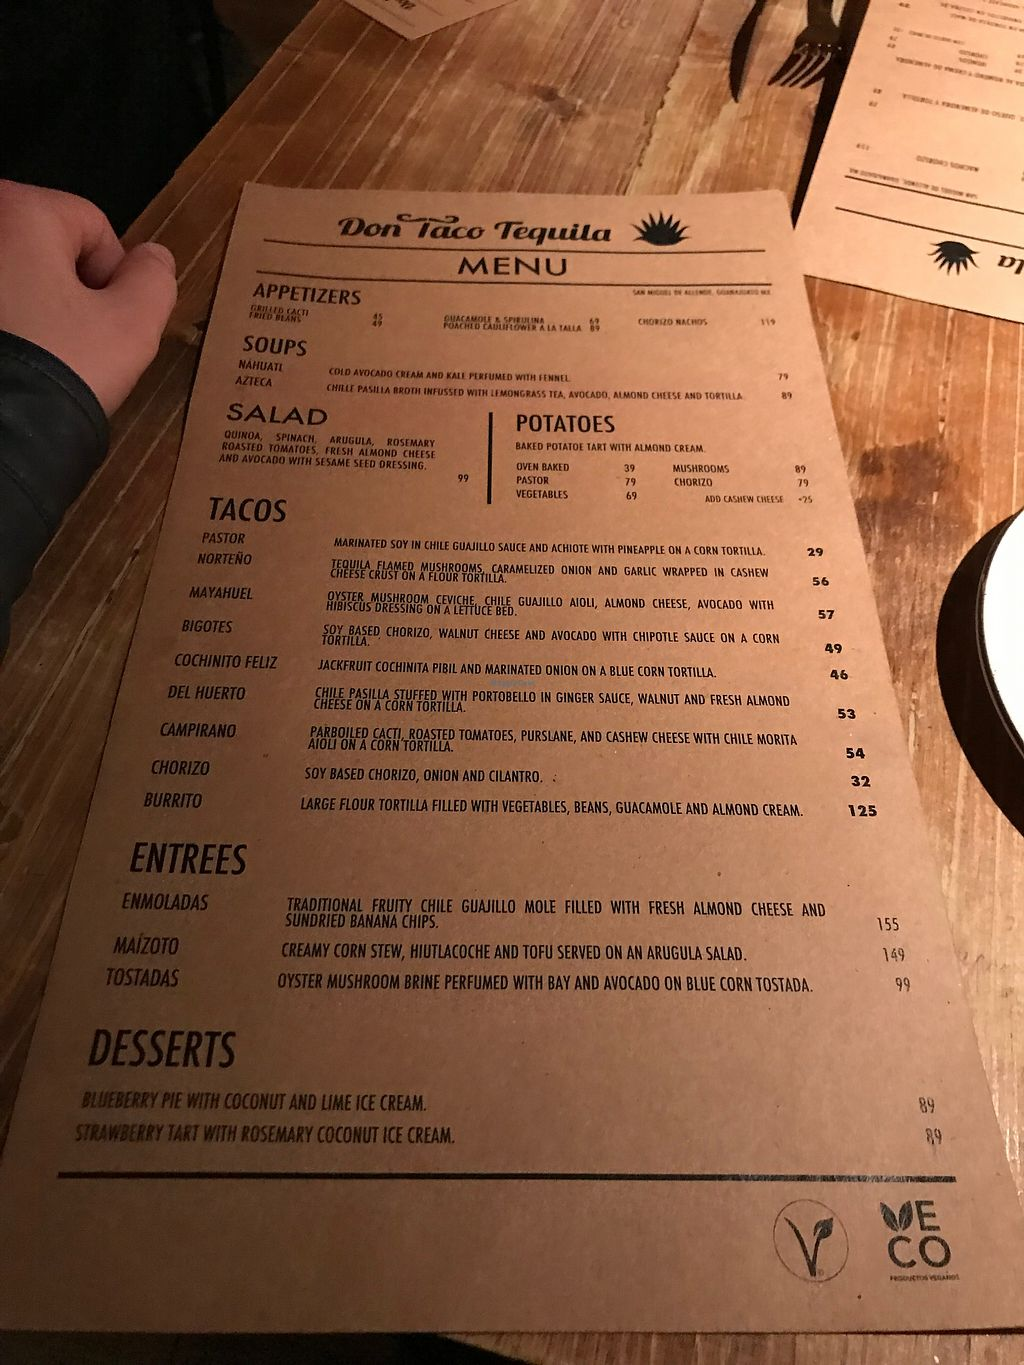 """Photo of Don Taco Tequila  by <a href=""""/members/profile/JosiahW"""">JosiahW</a> <br/>Menu <br/> April 3, 2018  - <a href='/contact/abuse/image/88272/380404'>Report</a>"""